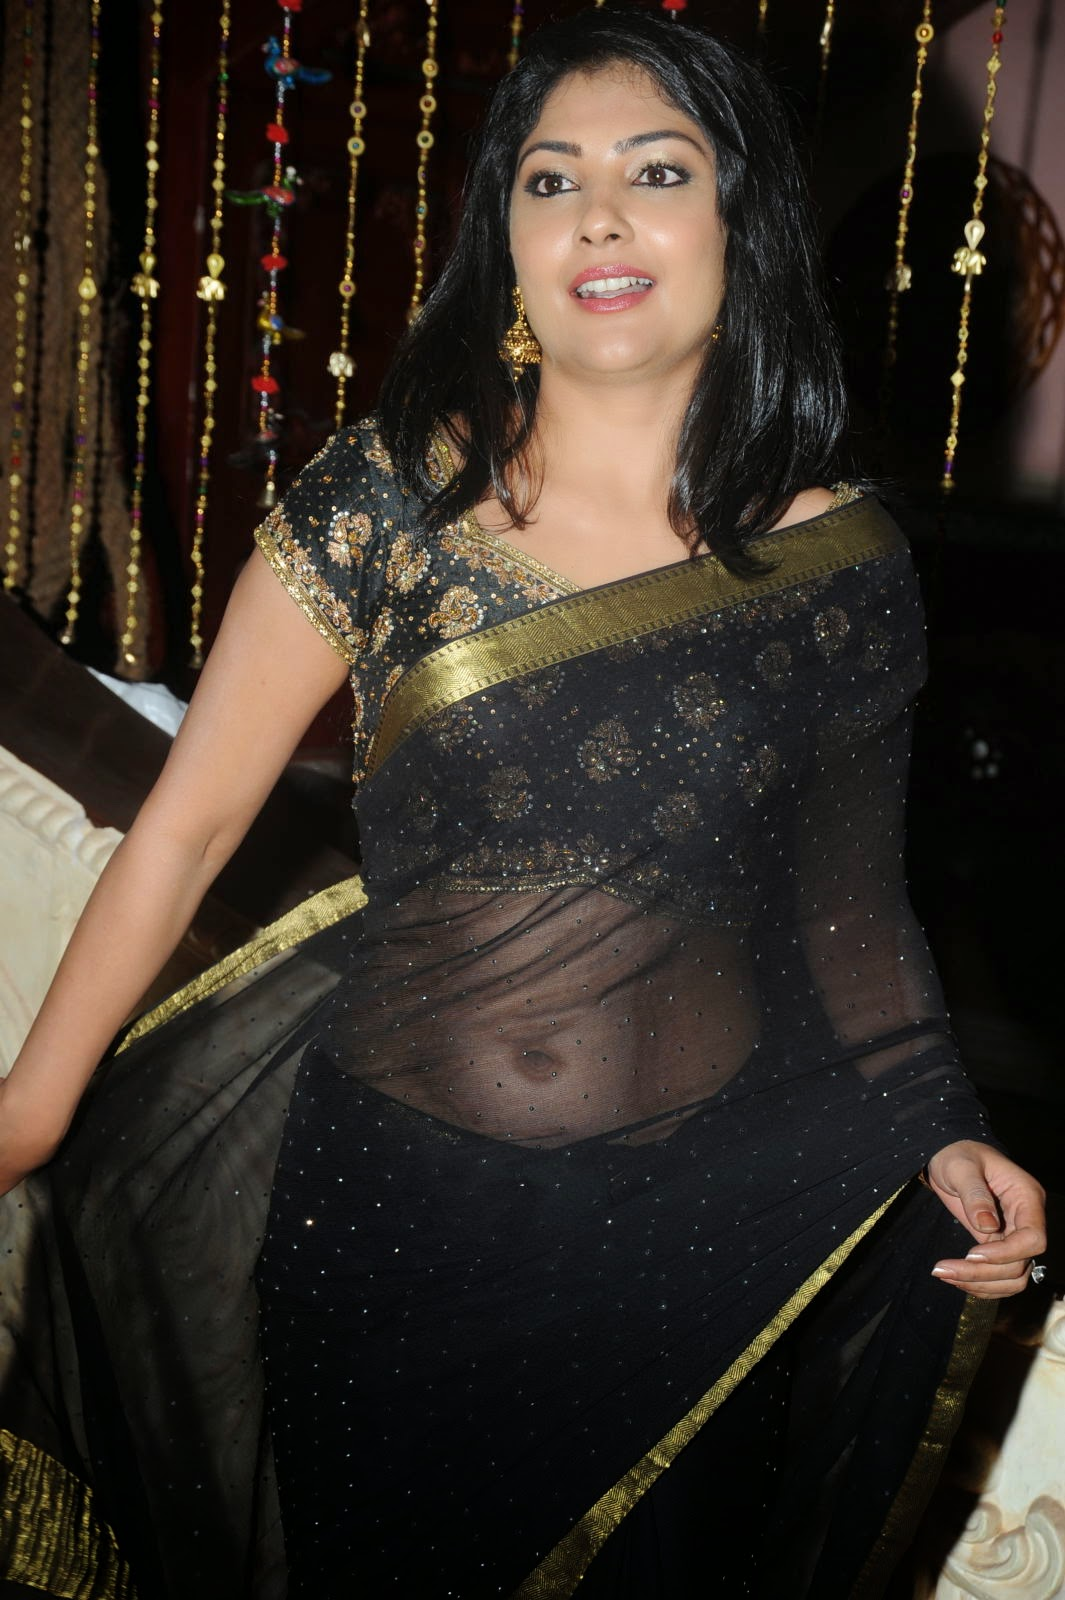 Bollywood Actresses Without Any Clothes Bollywood actr.